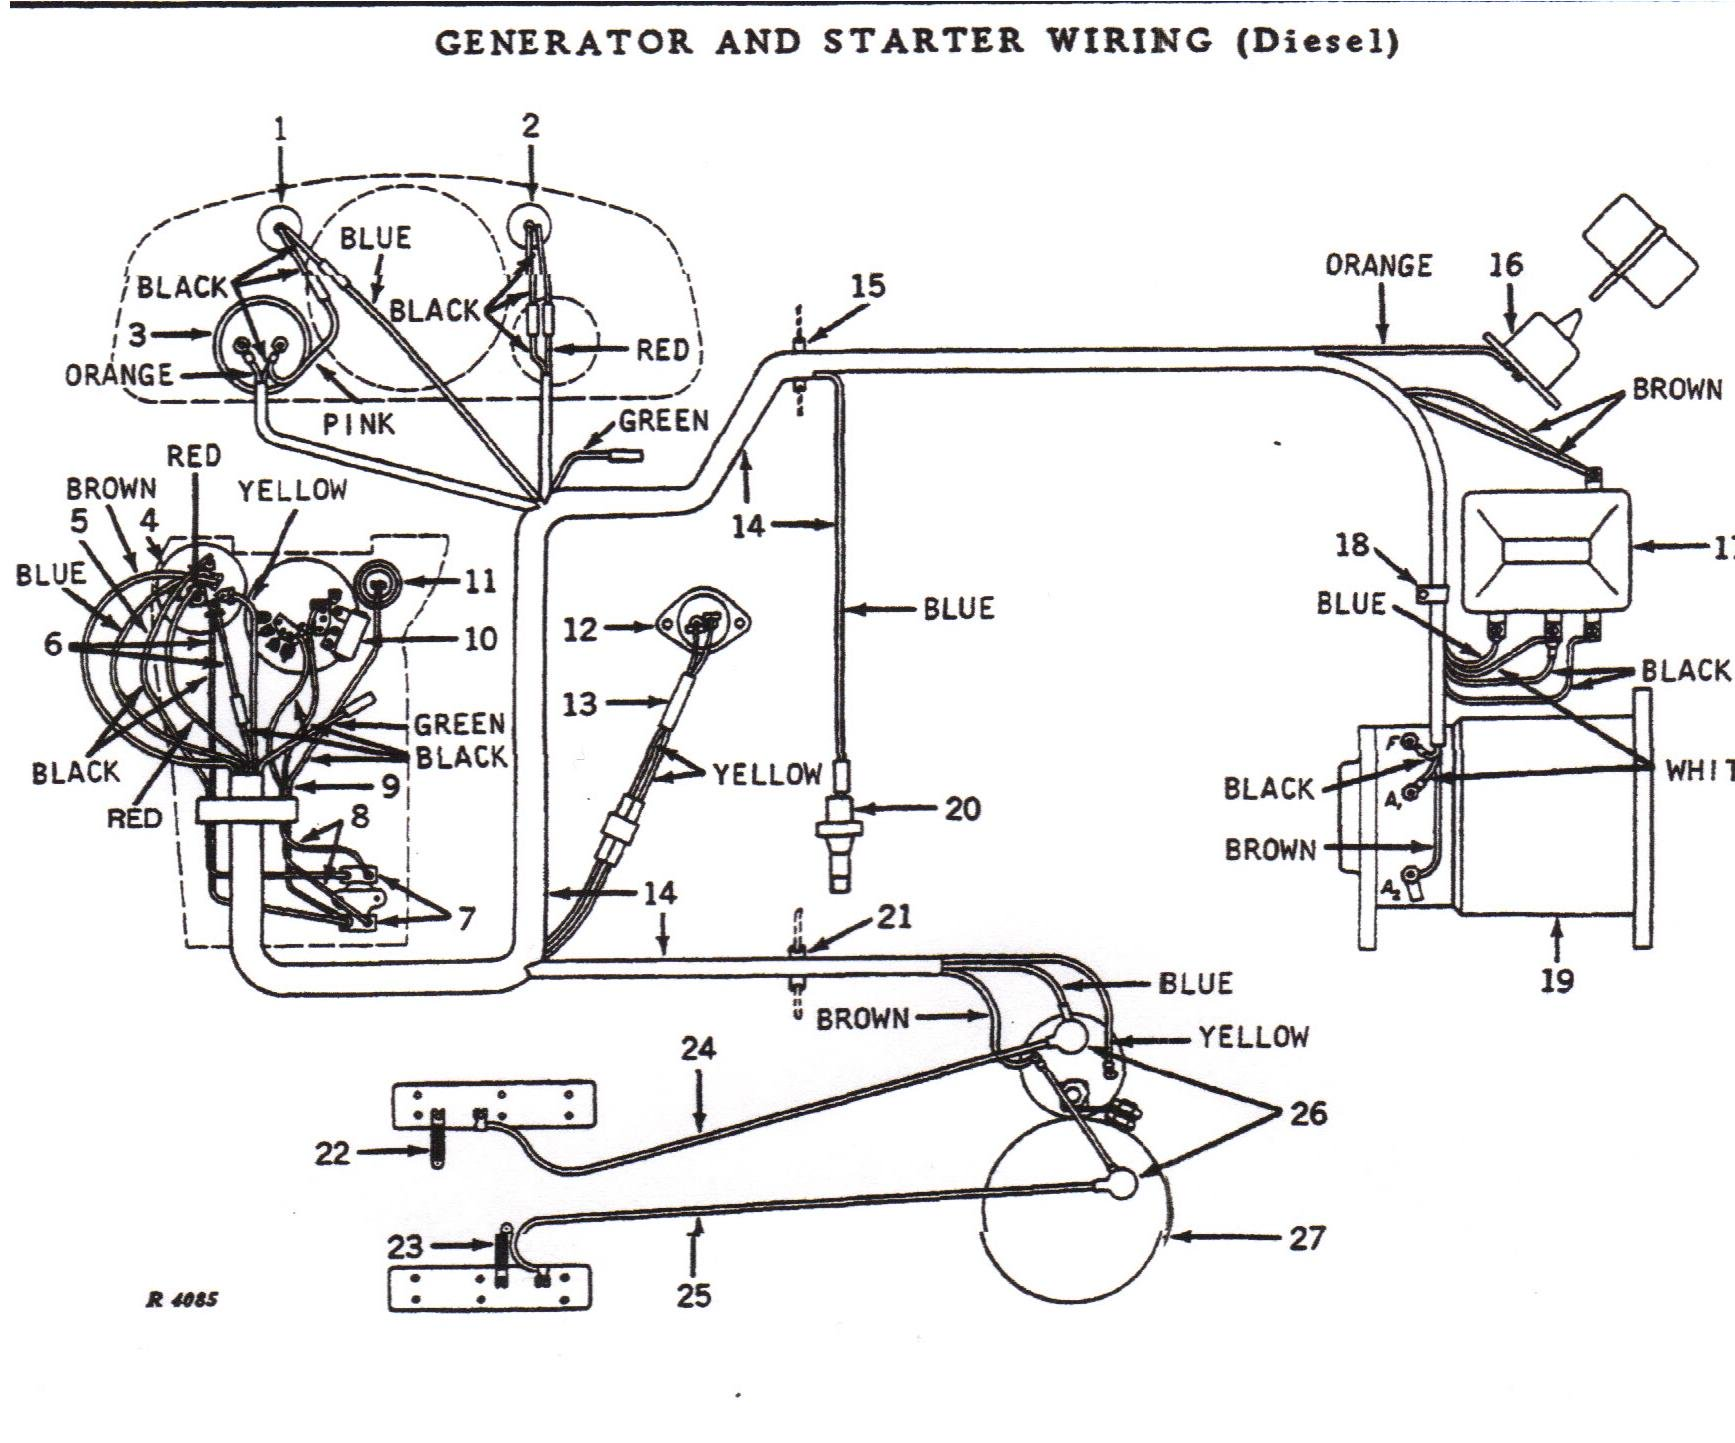 John Deere 4020 Wiring Diagram For Tractor - Wiring Diagram All  solve-approve - solve-approve.huevoprint.it | John Deere 3020 24 Volt Wiring Diagram |  | Huevoprint